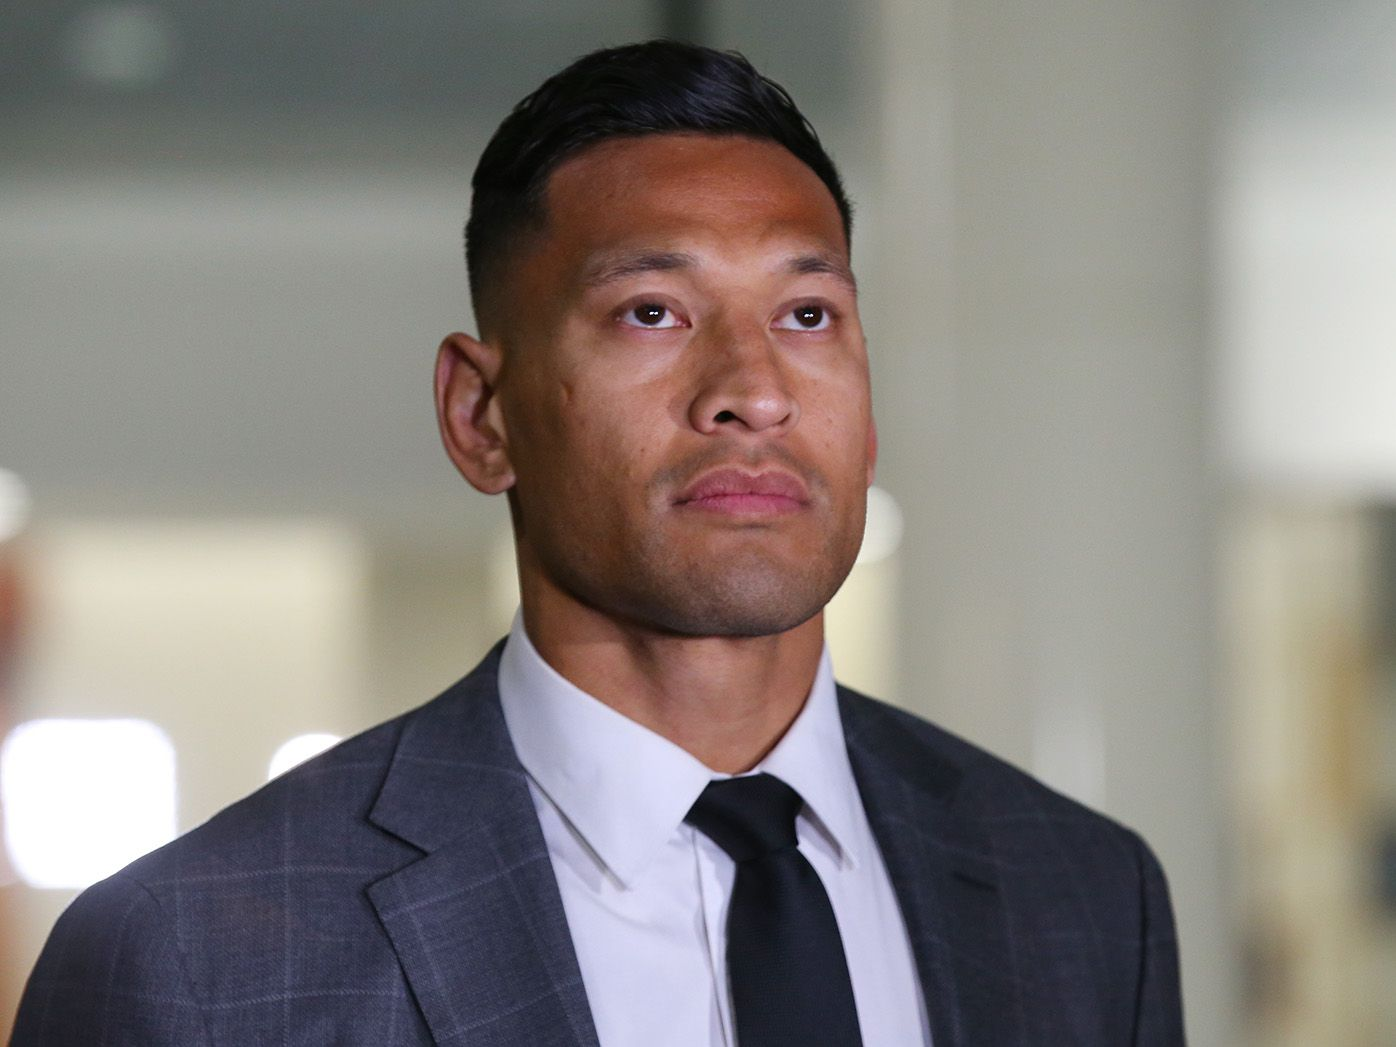 Israel Folau settles legal dispute with Rugby Australia over sacking